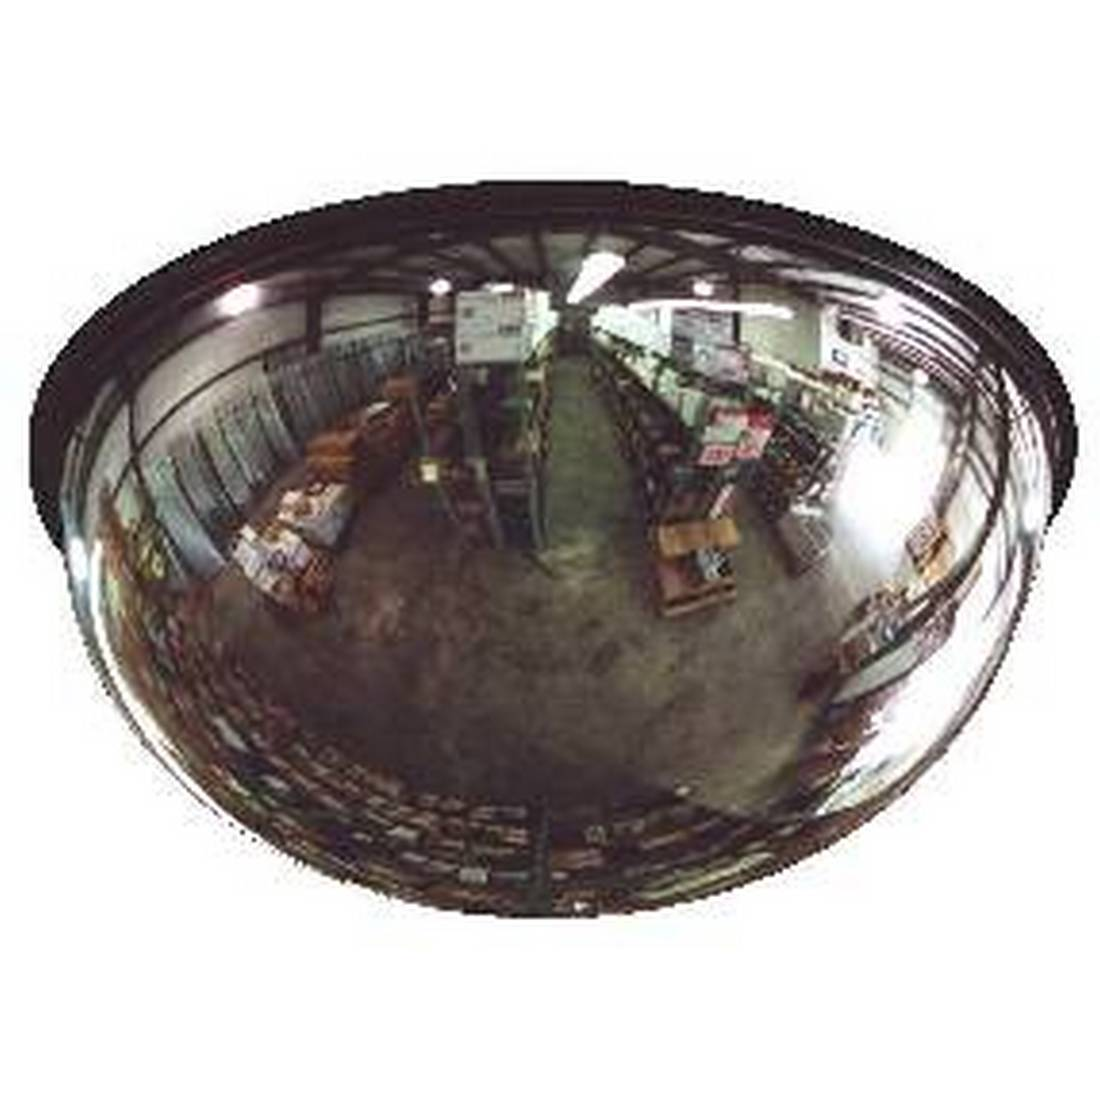 Brossard  360 Degree full view Dome Mirrors - Acrylic Lens / Galvanized Back